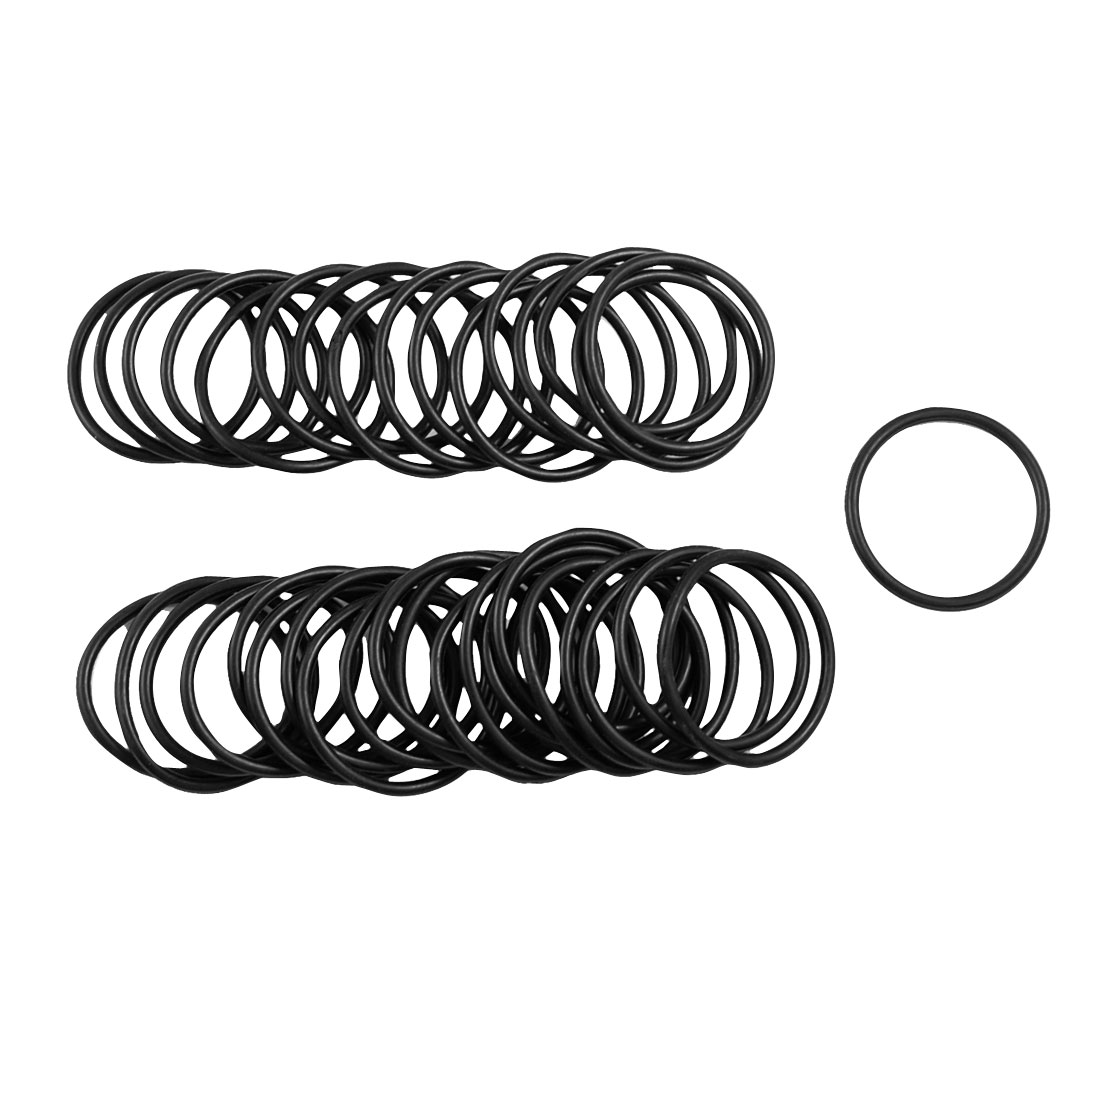 50 x Black 34mm OD 2.5mm Thickness Nitrile Rubber O-ring Oil Seal Gaskets